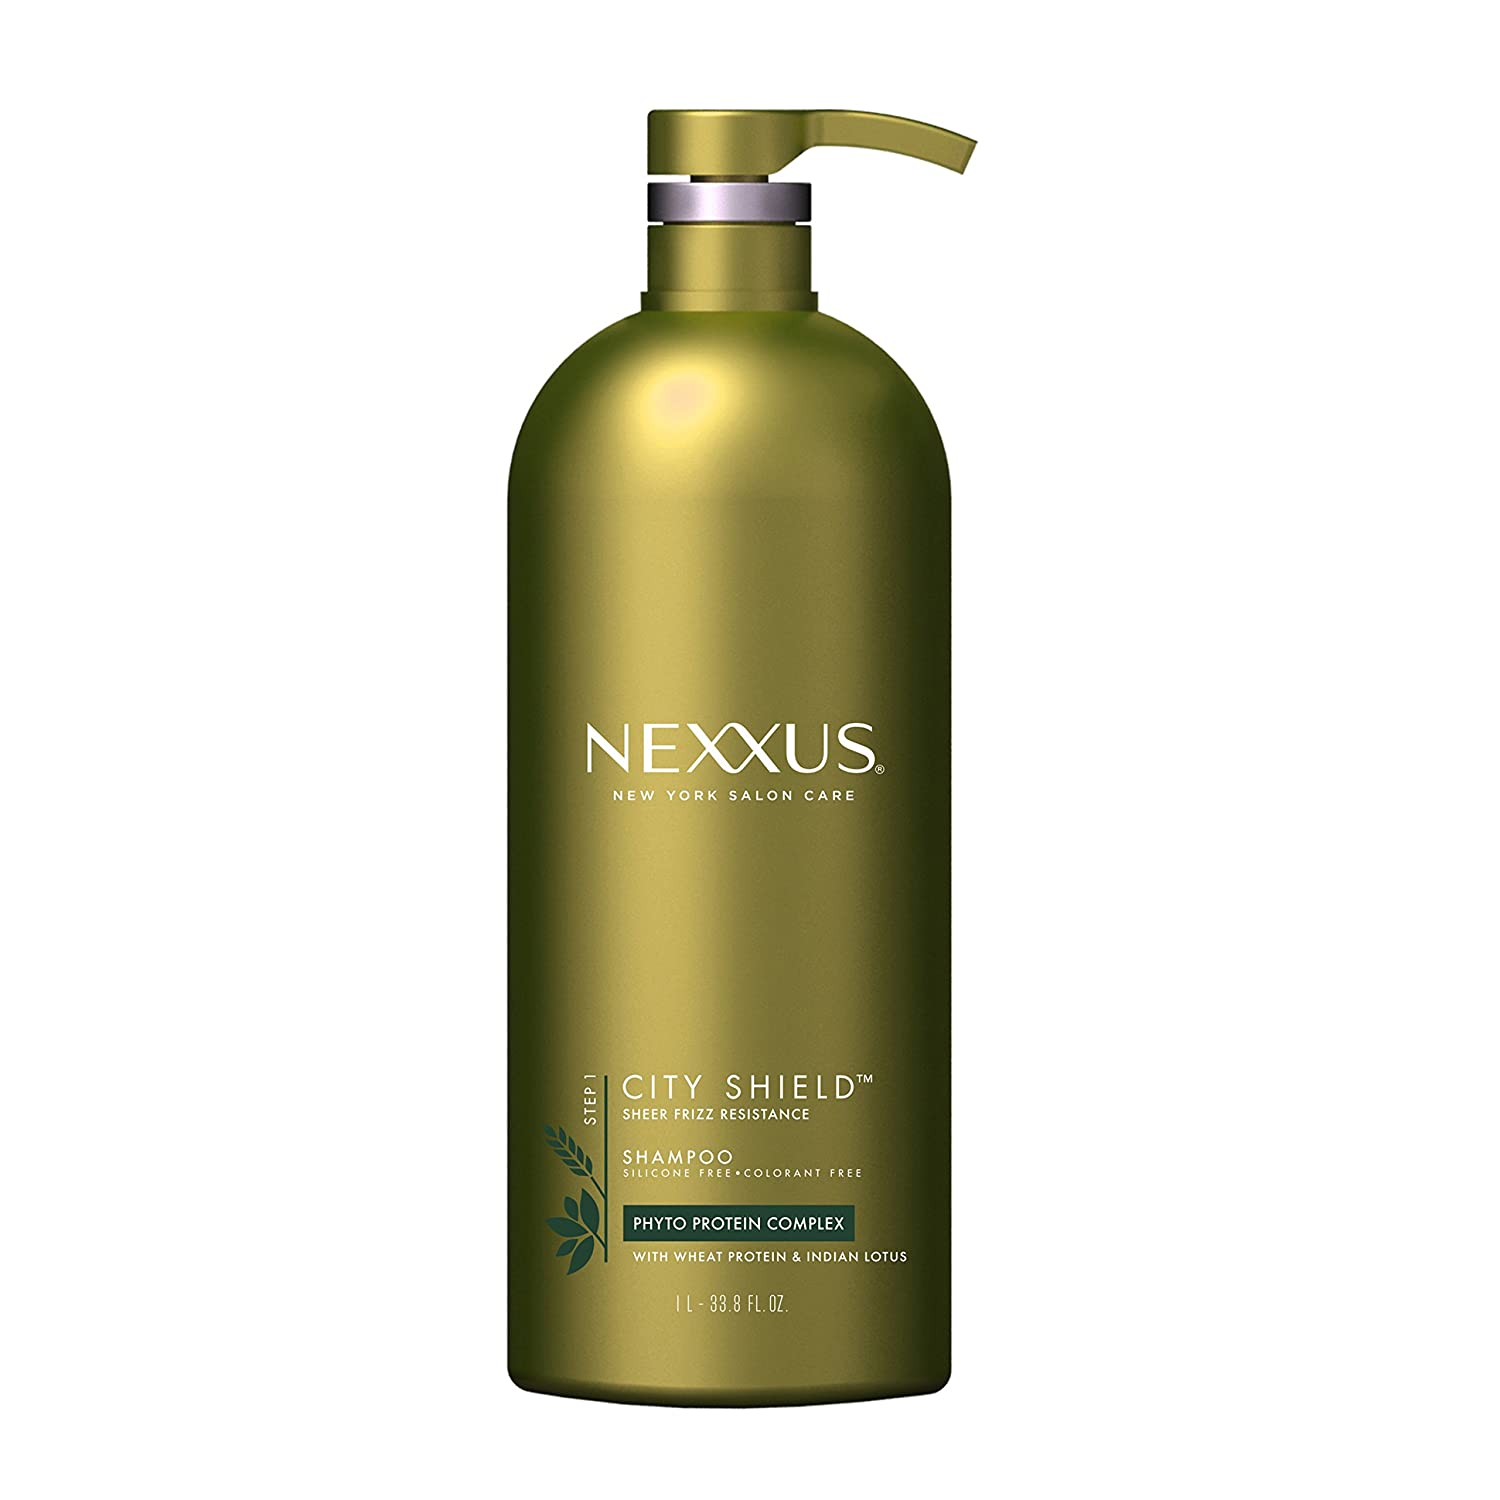 Nexxus City Shield Shampoo, for All Hair Types 33.8 oz